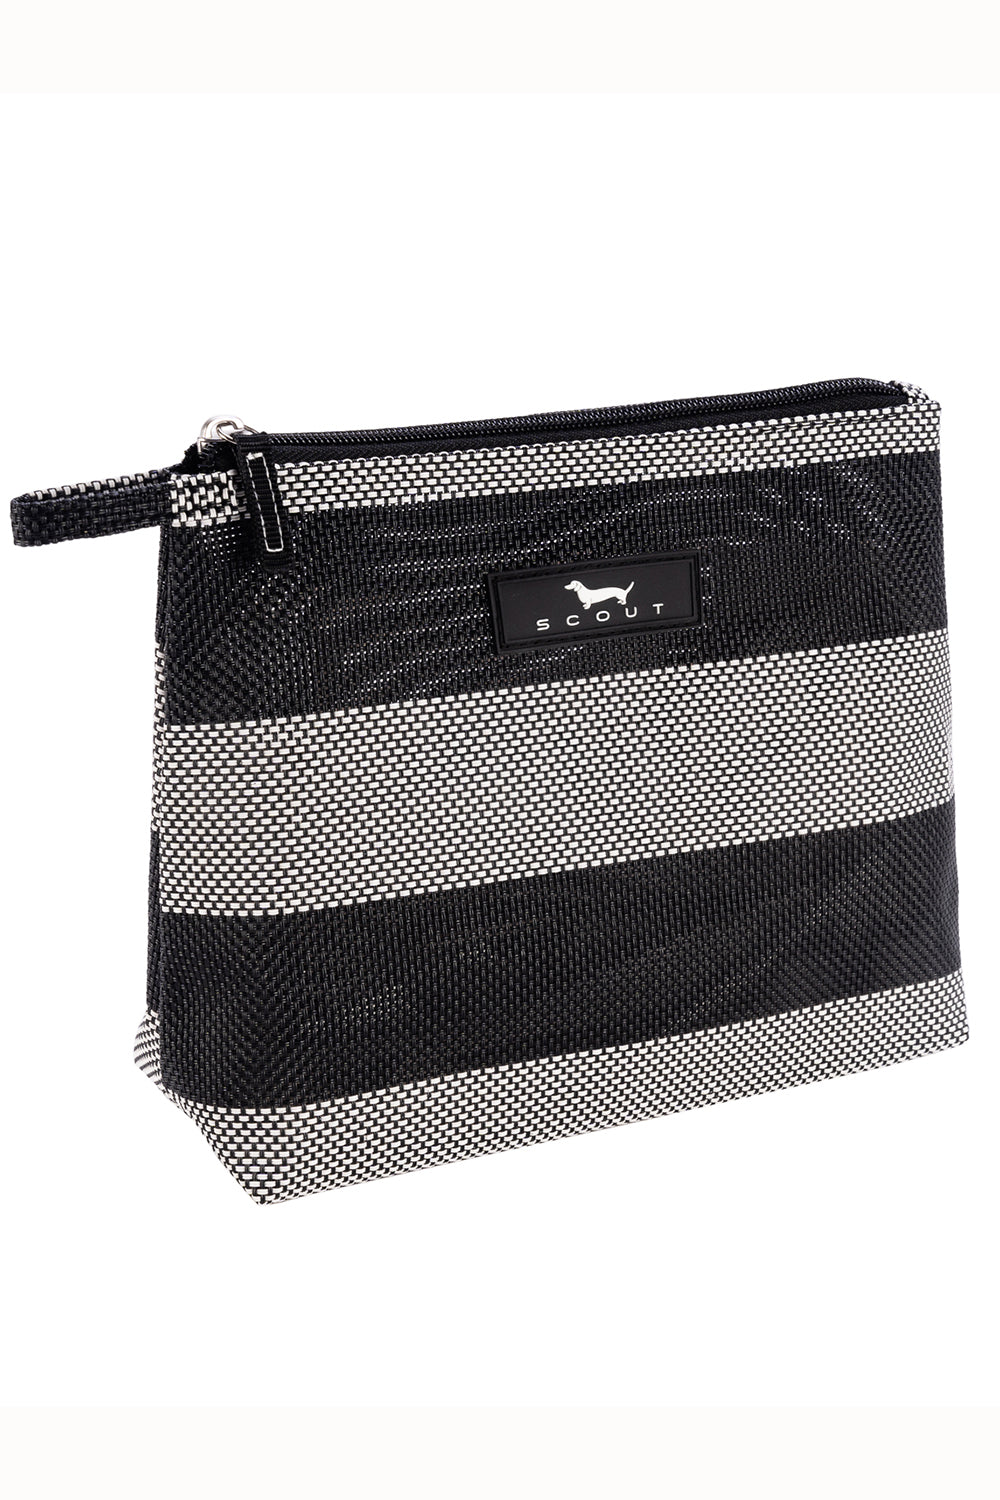 "NEW FABRIC Go Getter Cosmetic Bag - ""Baja Black"" SUM21"